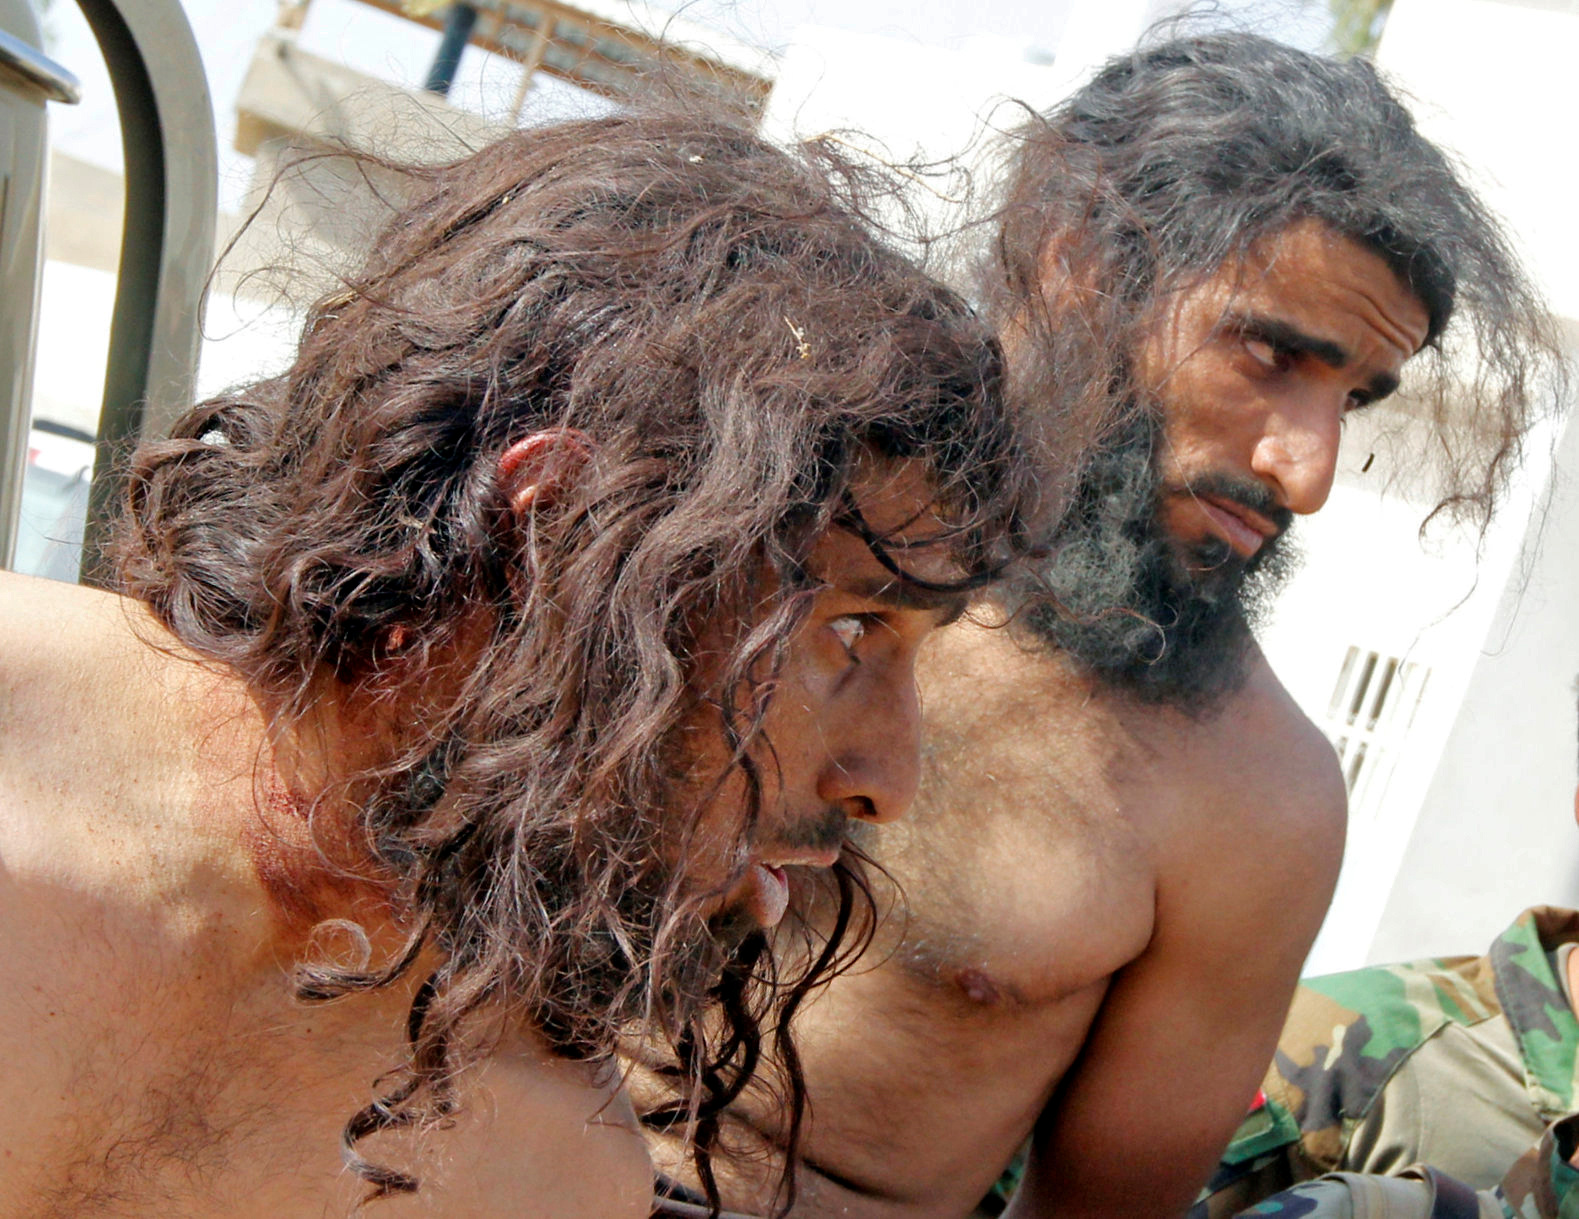 Captives suspected of being Islamic State militants are seen southwest of Kirkuk, Iraq.